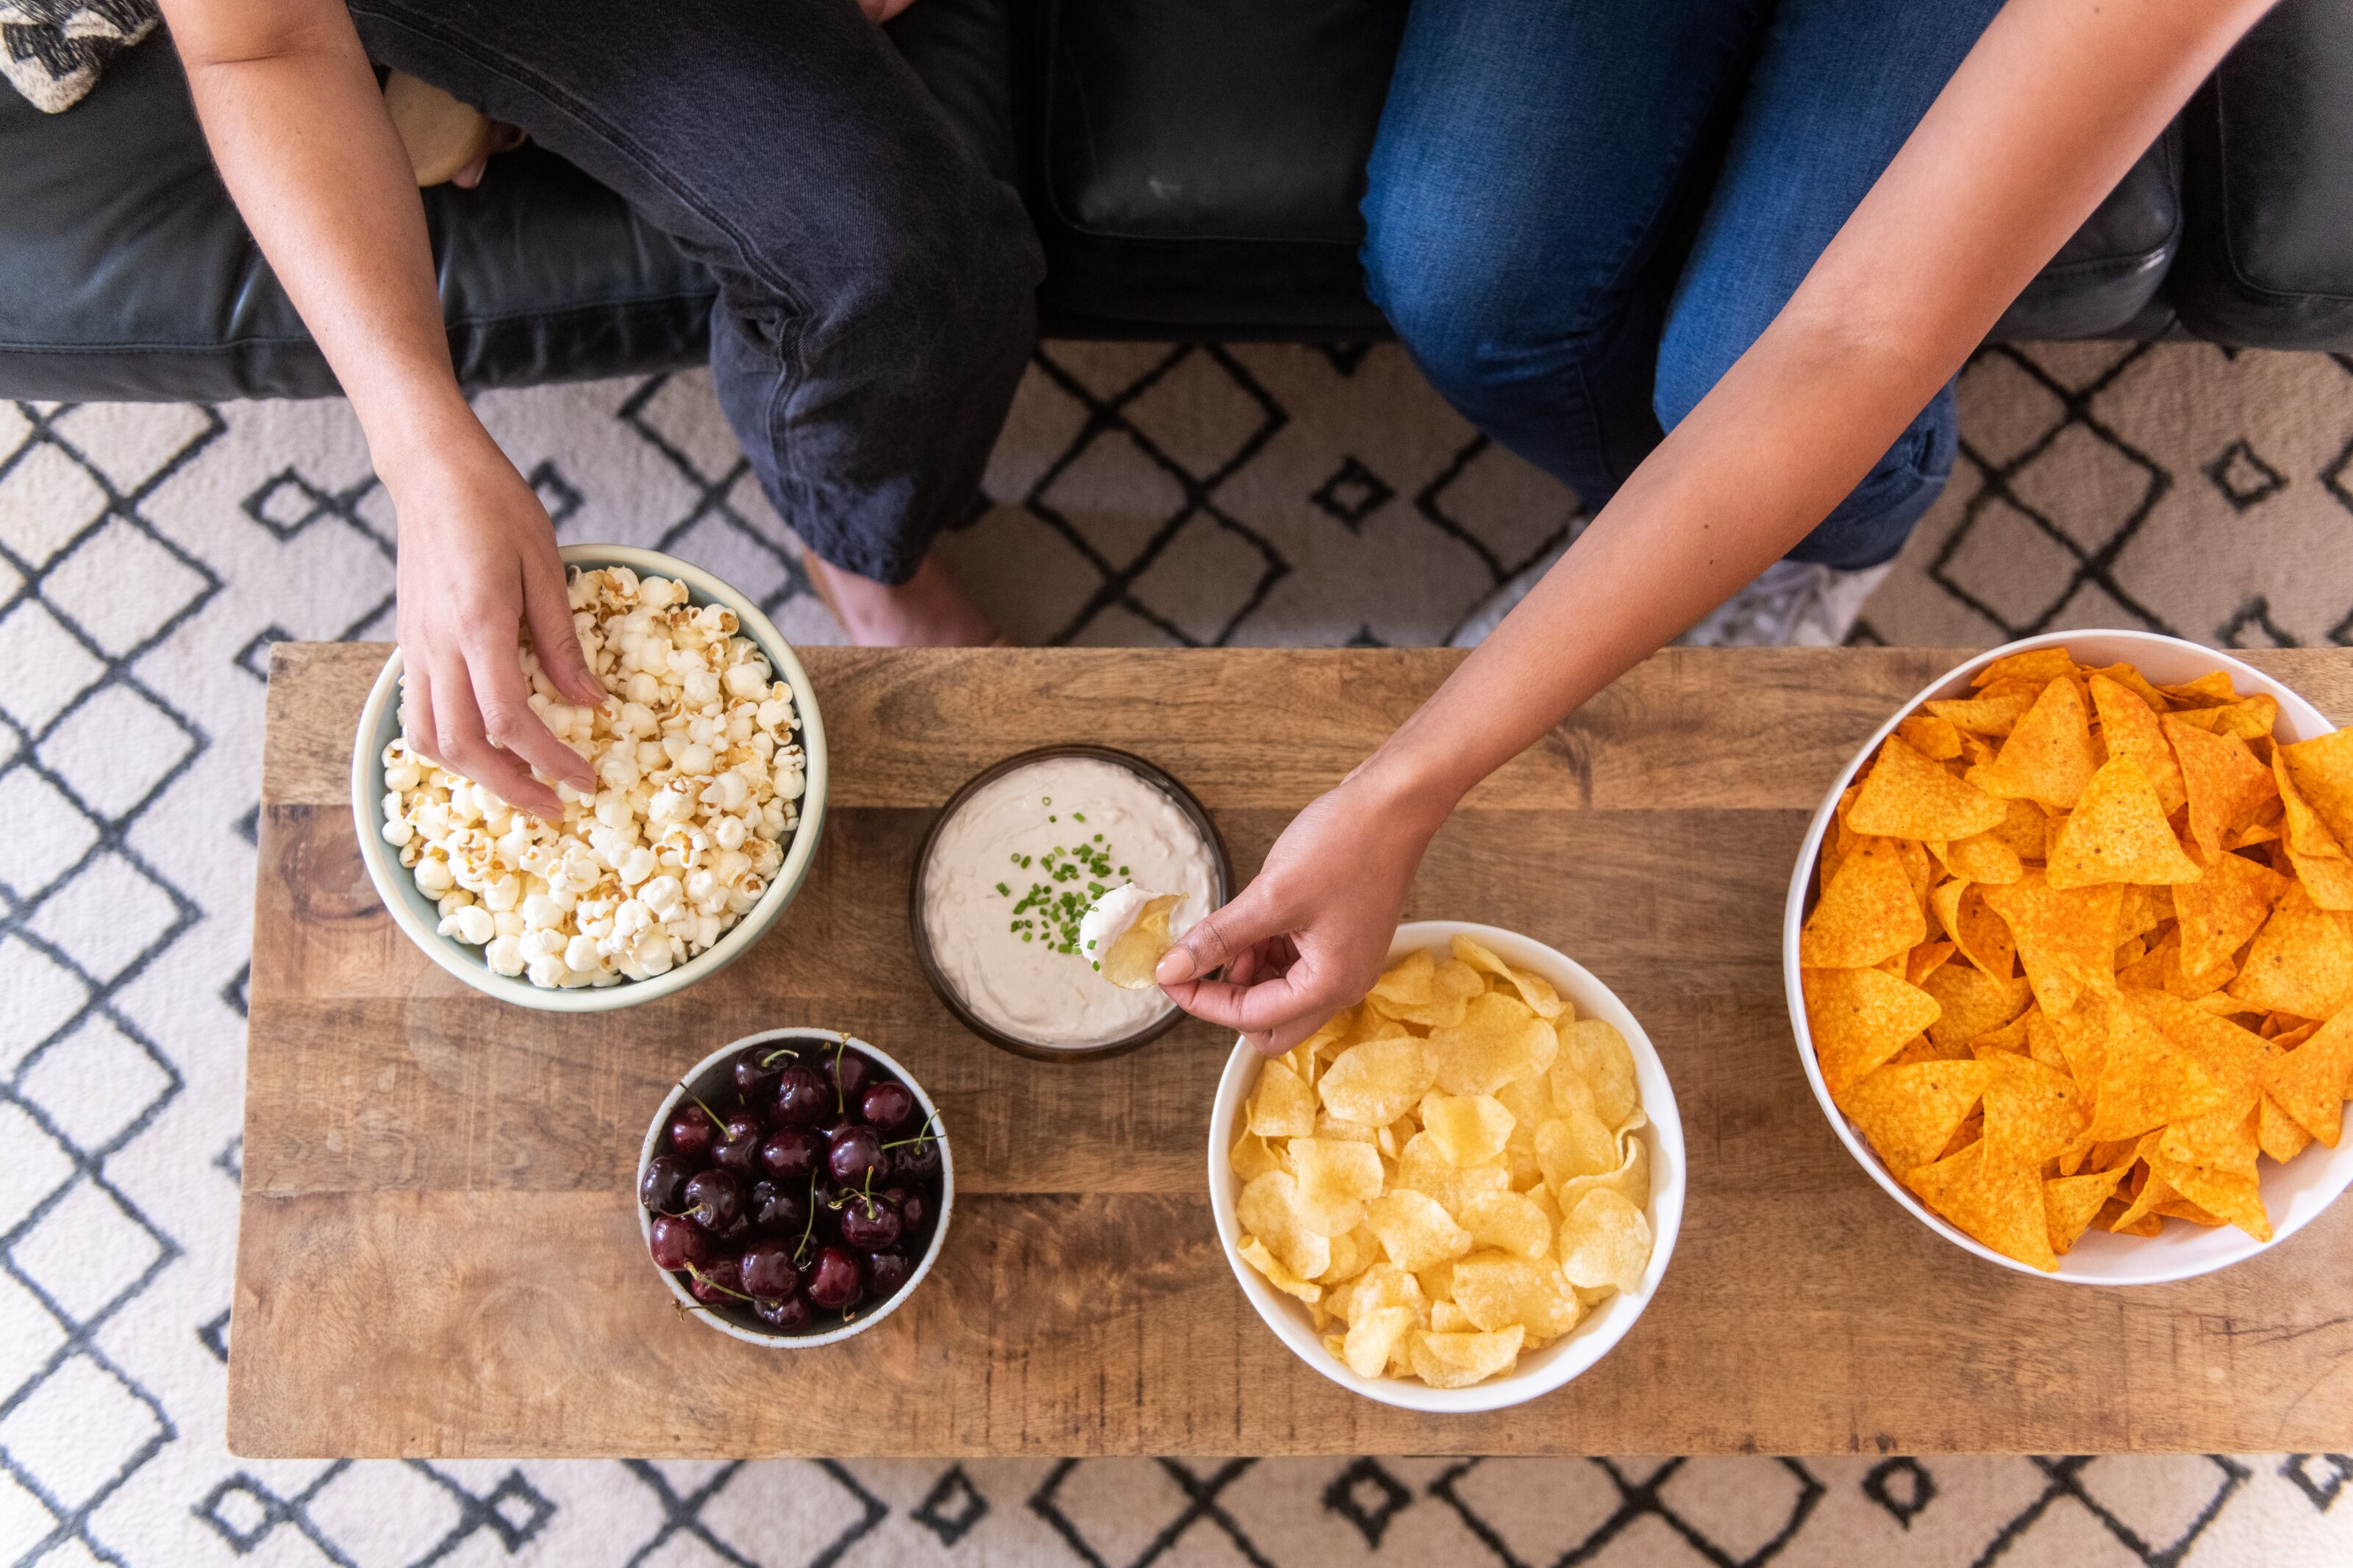 Are tortilla chips or potato chips better Super Bowl snacks?